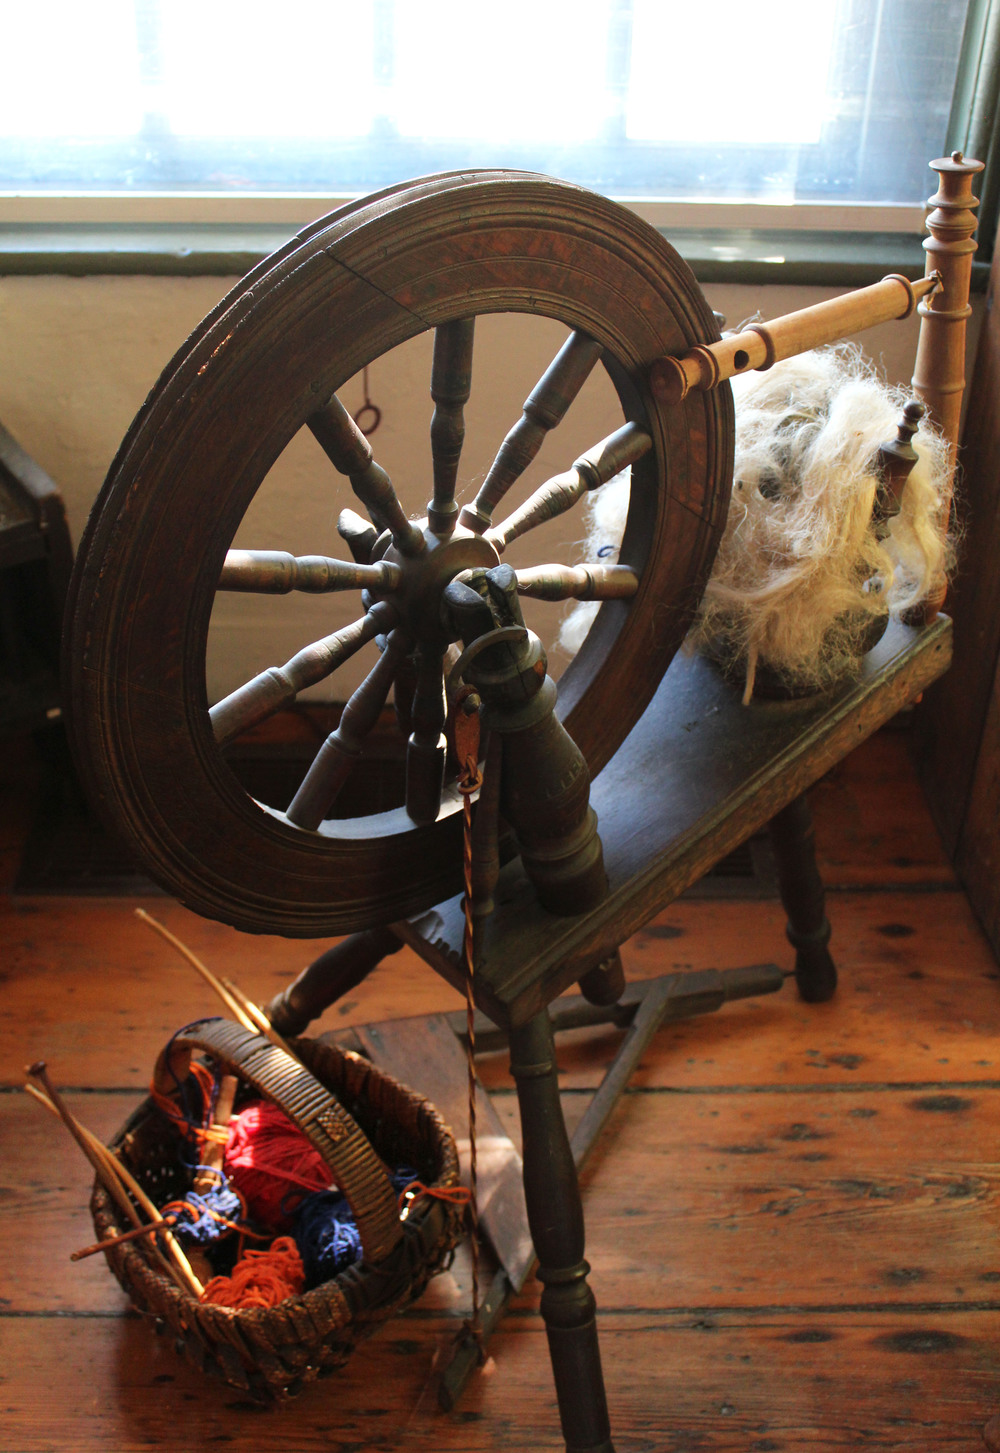 Spinning wheel, Laurel Hill kitchen.  Photo by Samantha Madera, 2012.